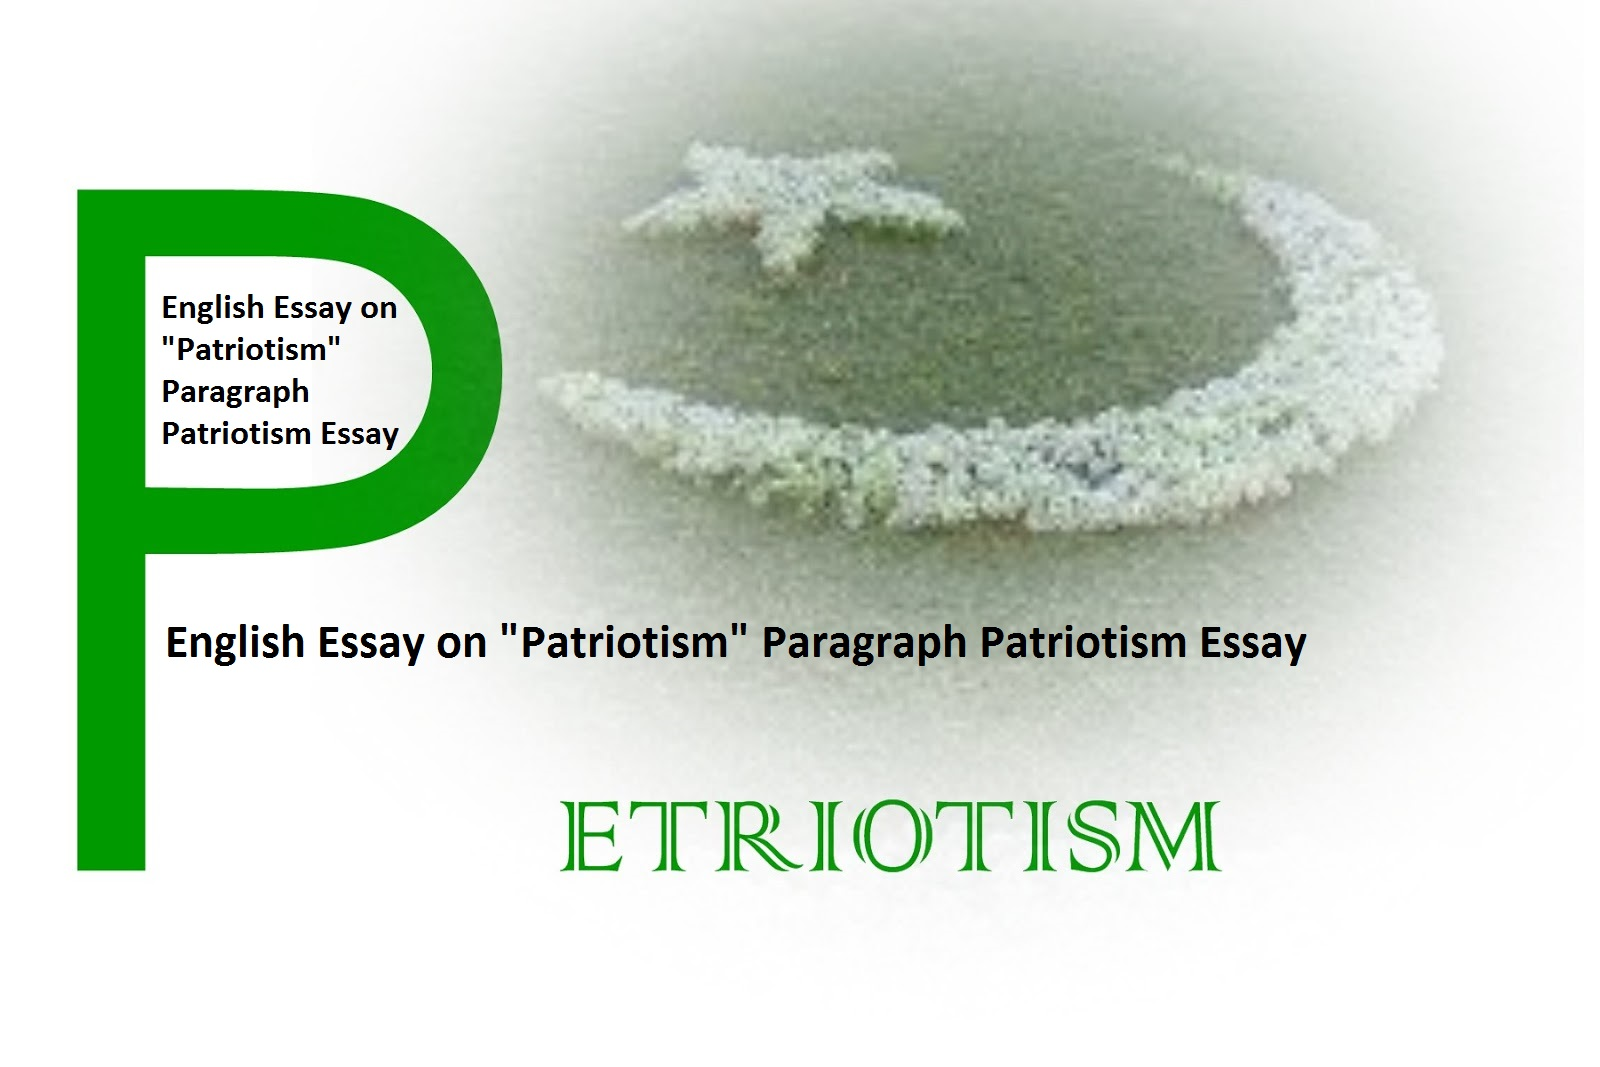 english essay on patriotism paragraph patriotism essay all english essay on patriotism paragraph patriotism essay